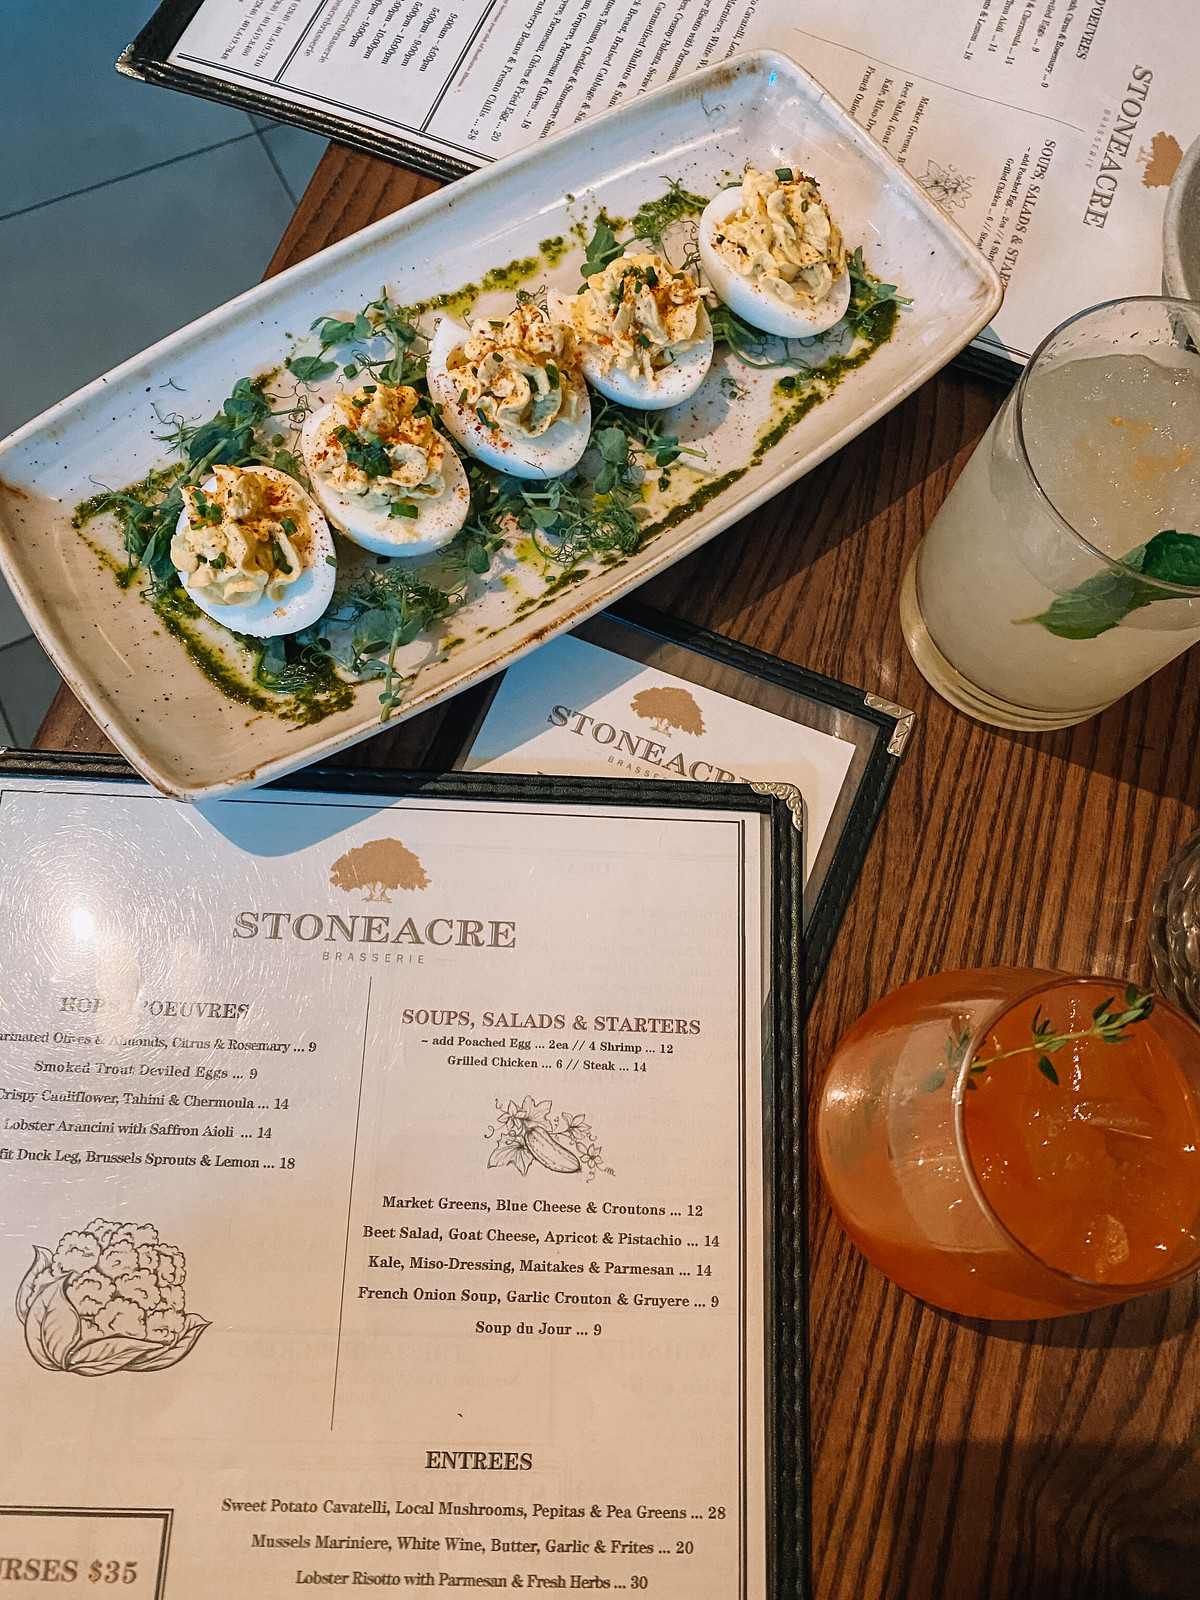 Stoneacre Brasserie Smoked Trout Deviled Eggs | Where to Eat in Newport | 48 Hours in Newport Itinerary | A First Timer's Guide to 2 Days in Newport Rhode Island | What to do in Newport | Newport Travel Guide | Best Things to do in Newport | Best Places to Visit in Newport